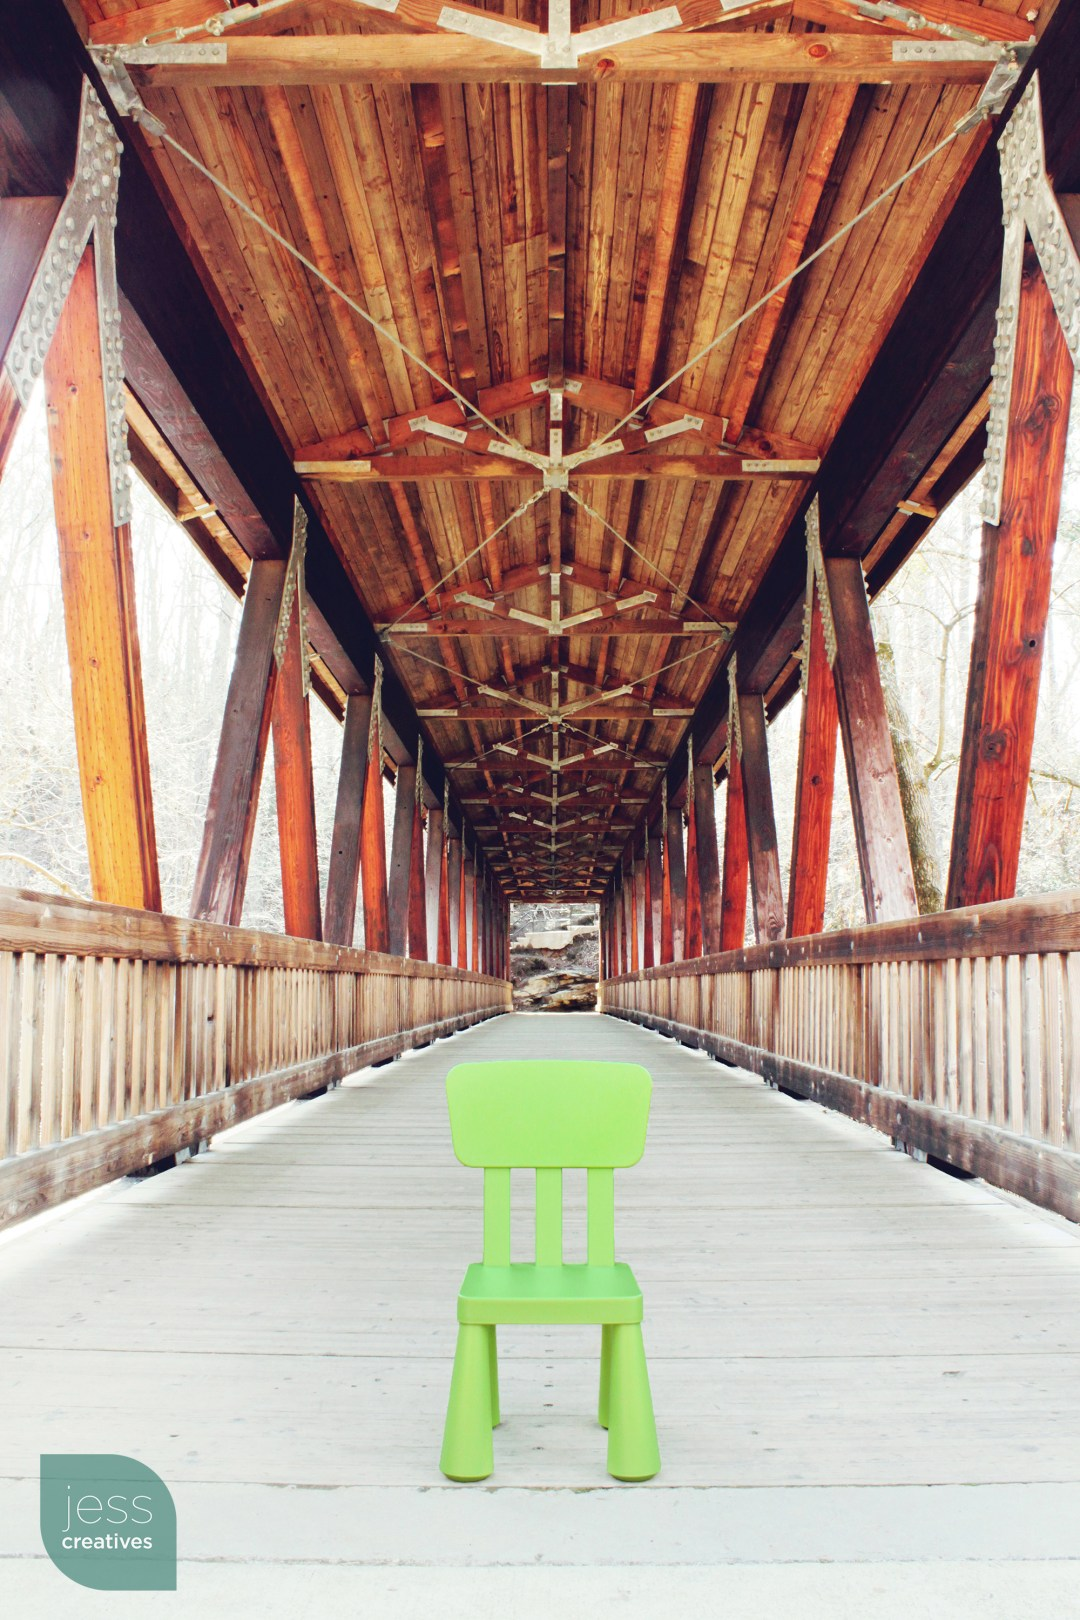 I hope there's not a troll under this bridge.